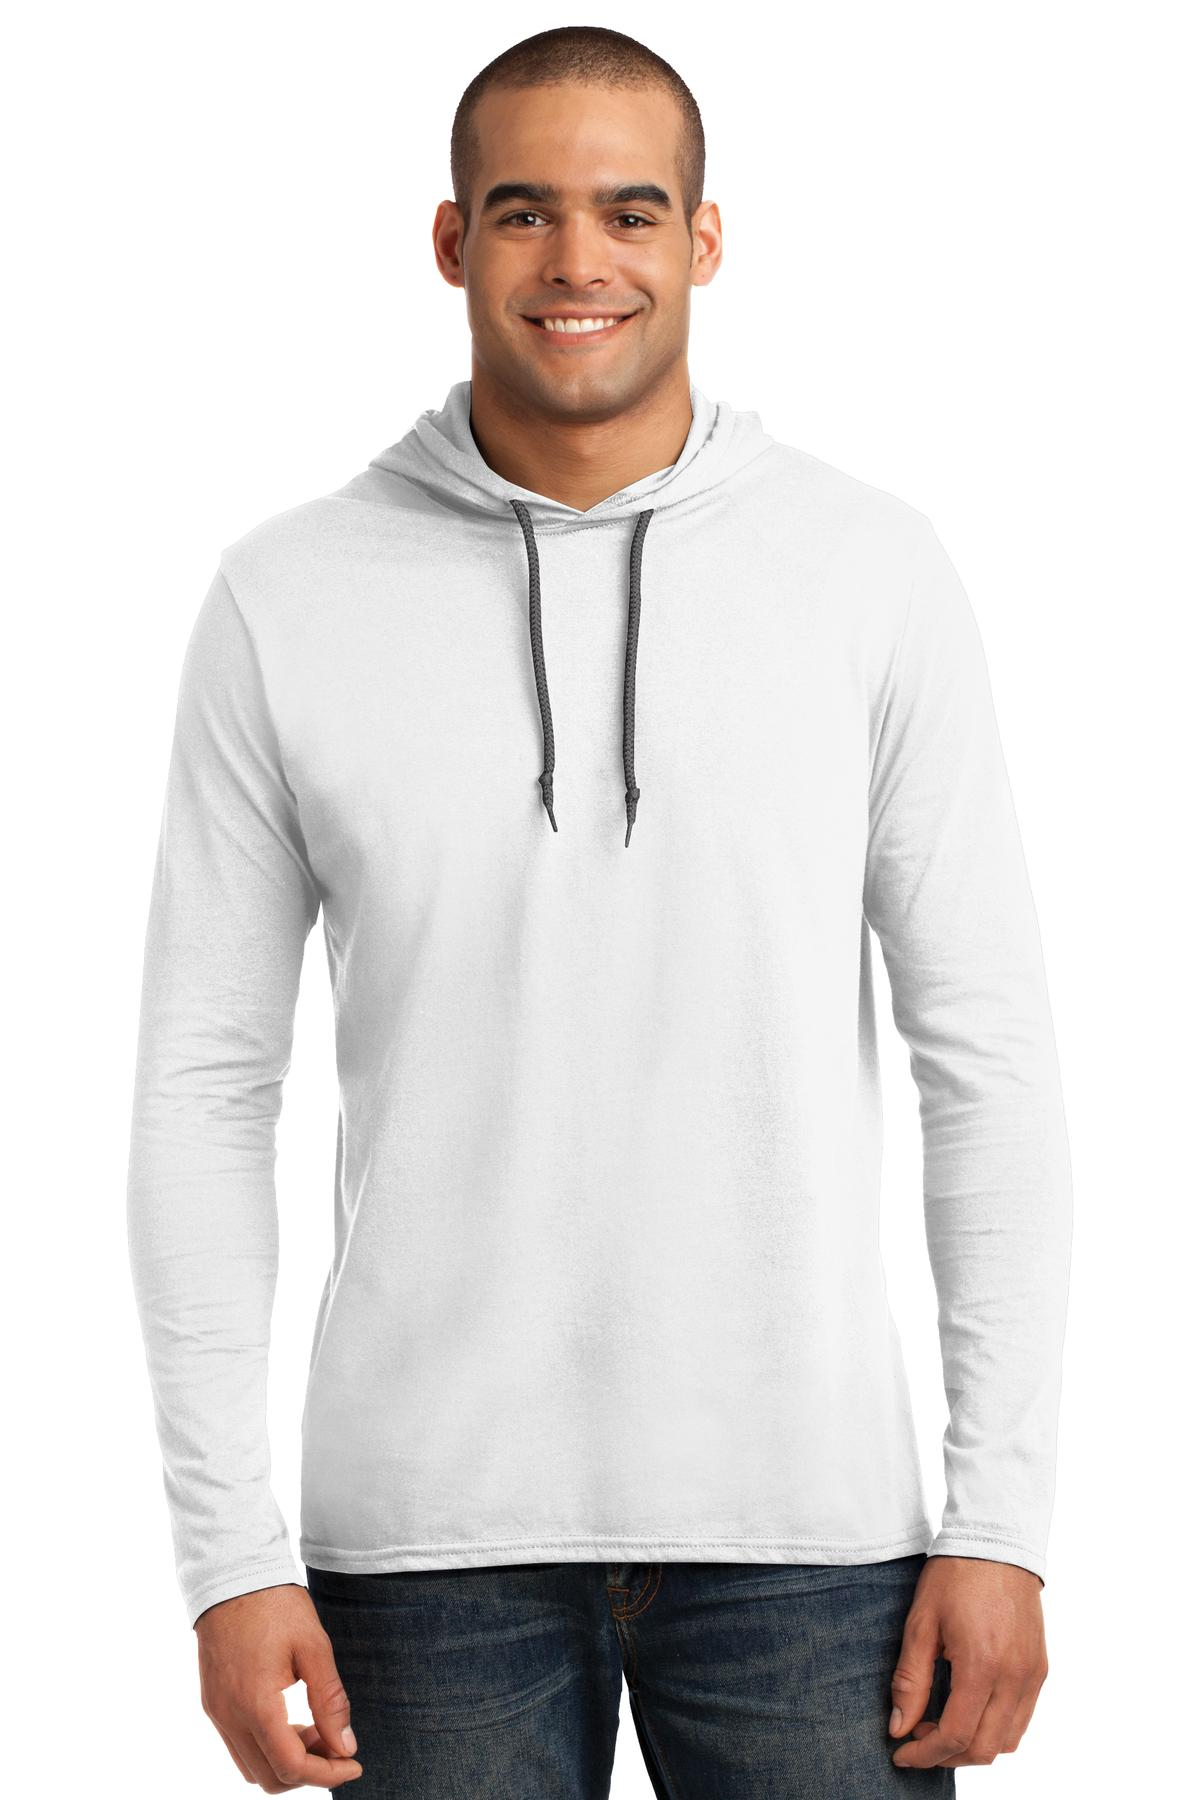 Anvil ®  100% Combed Ring Spun Cotton Long Sleeve Hooded T-Shirt. 987 - White/ Dark Grey